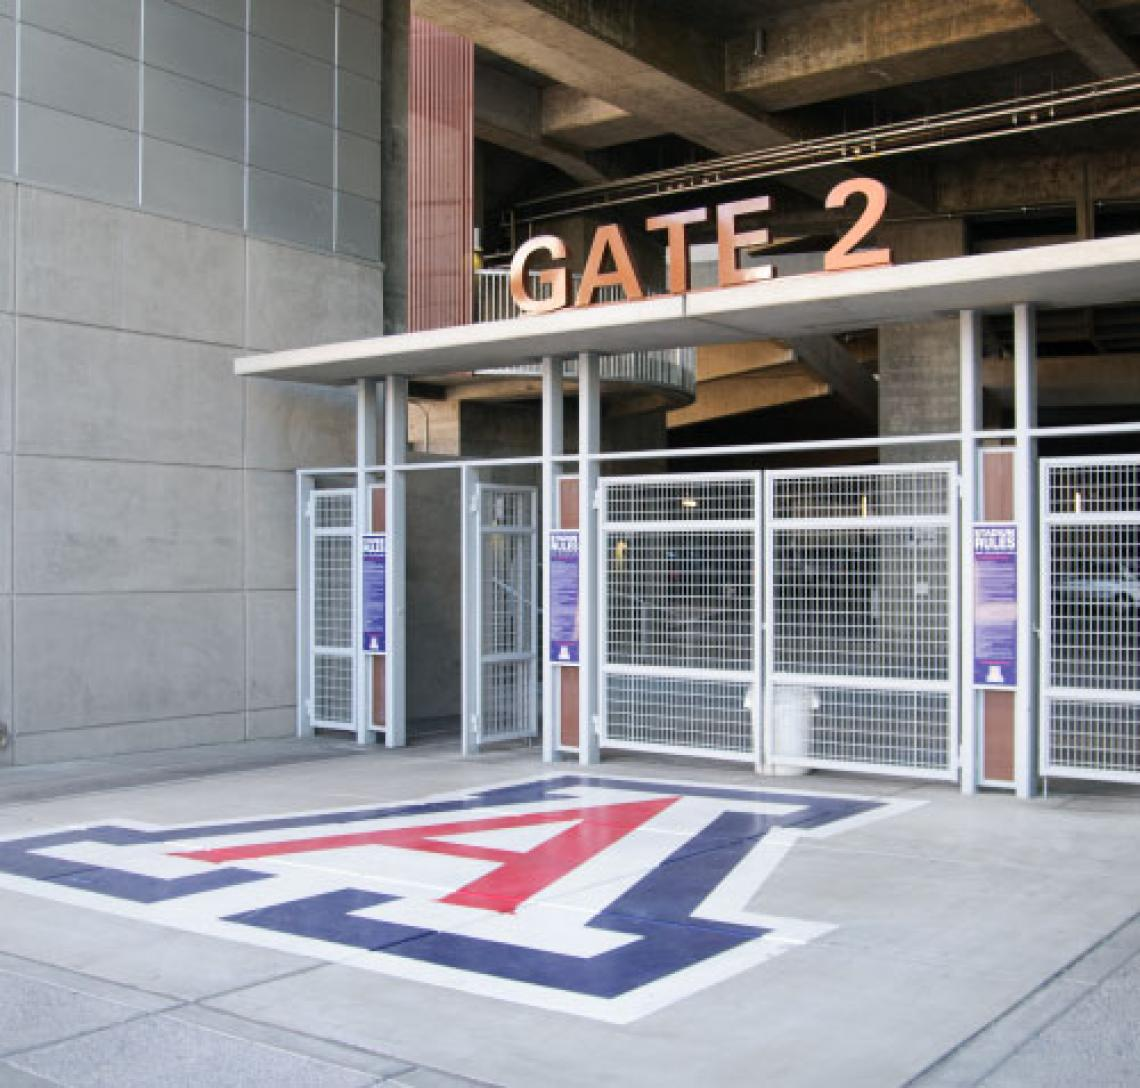 """An entrance into Arizona Stadium with words reading """"Gate 2"""" overhead can be seen with the Block A painted onto the floor in front of the gate"""